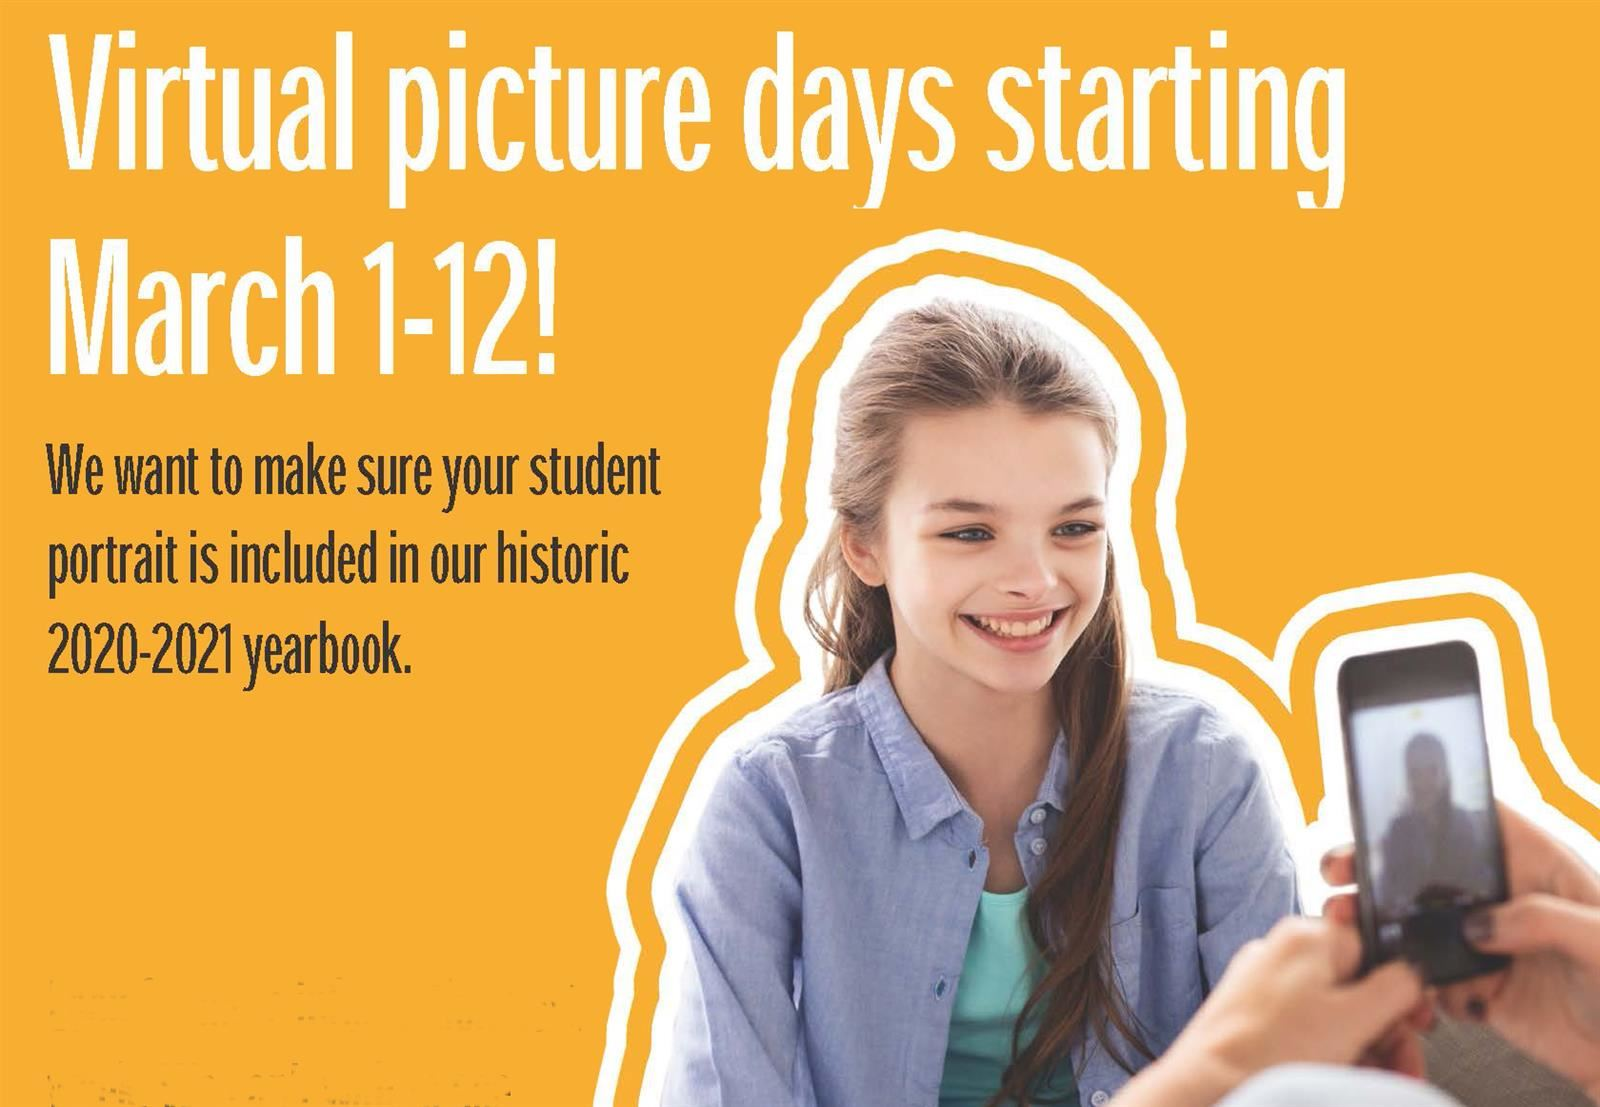 selfie photo advertising virtual picture day